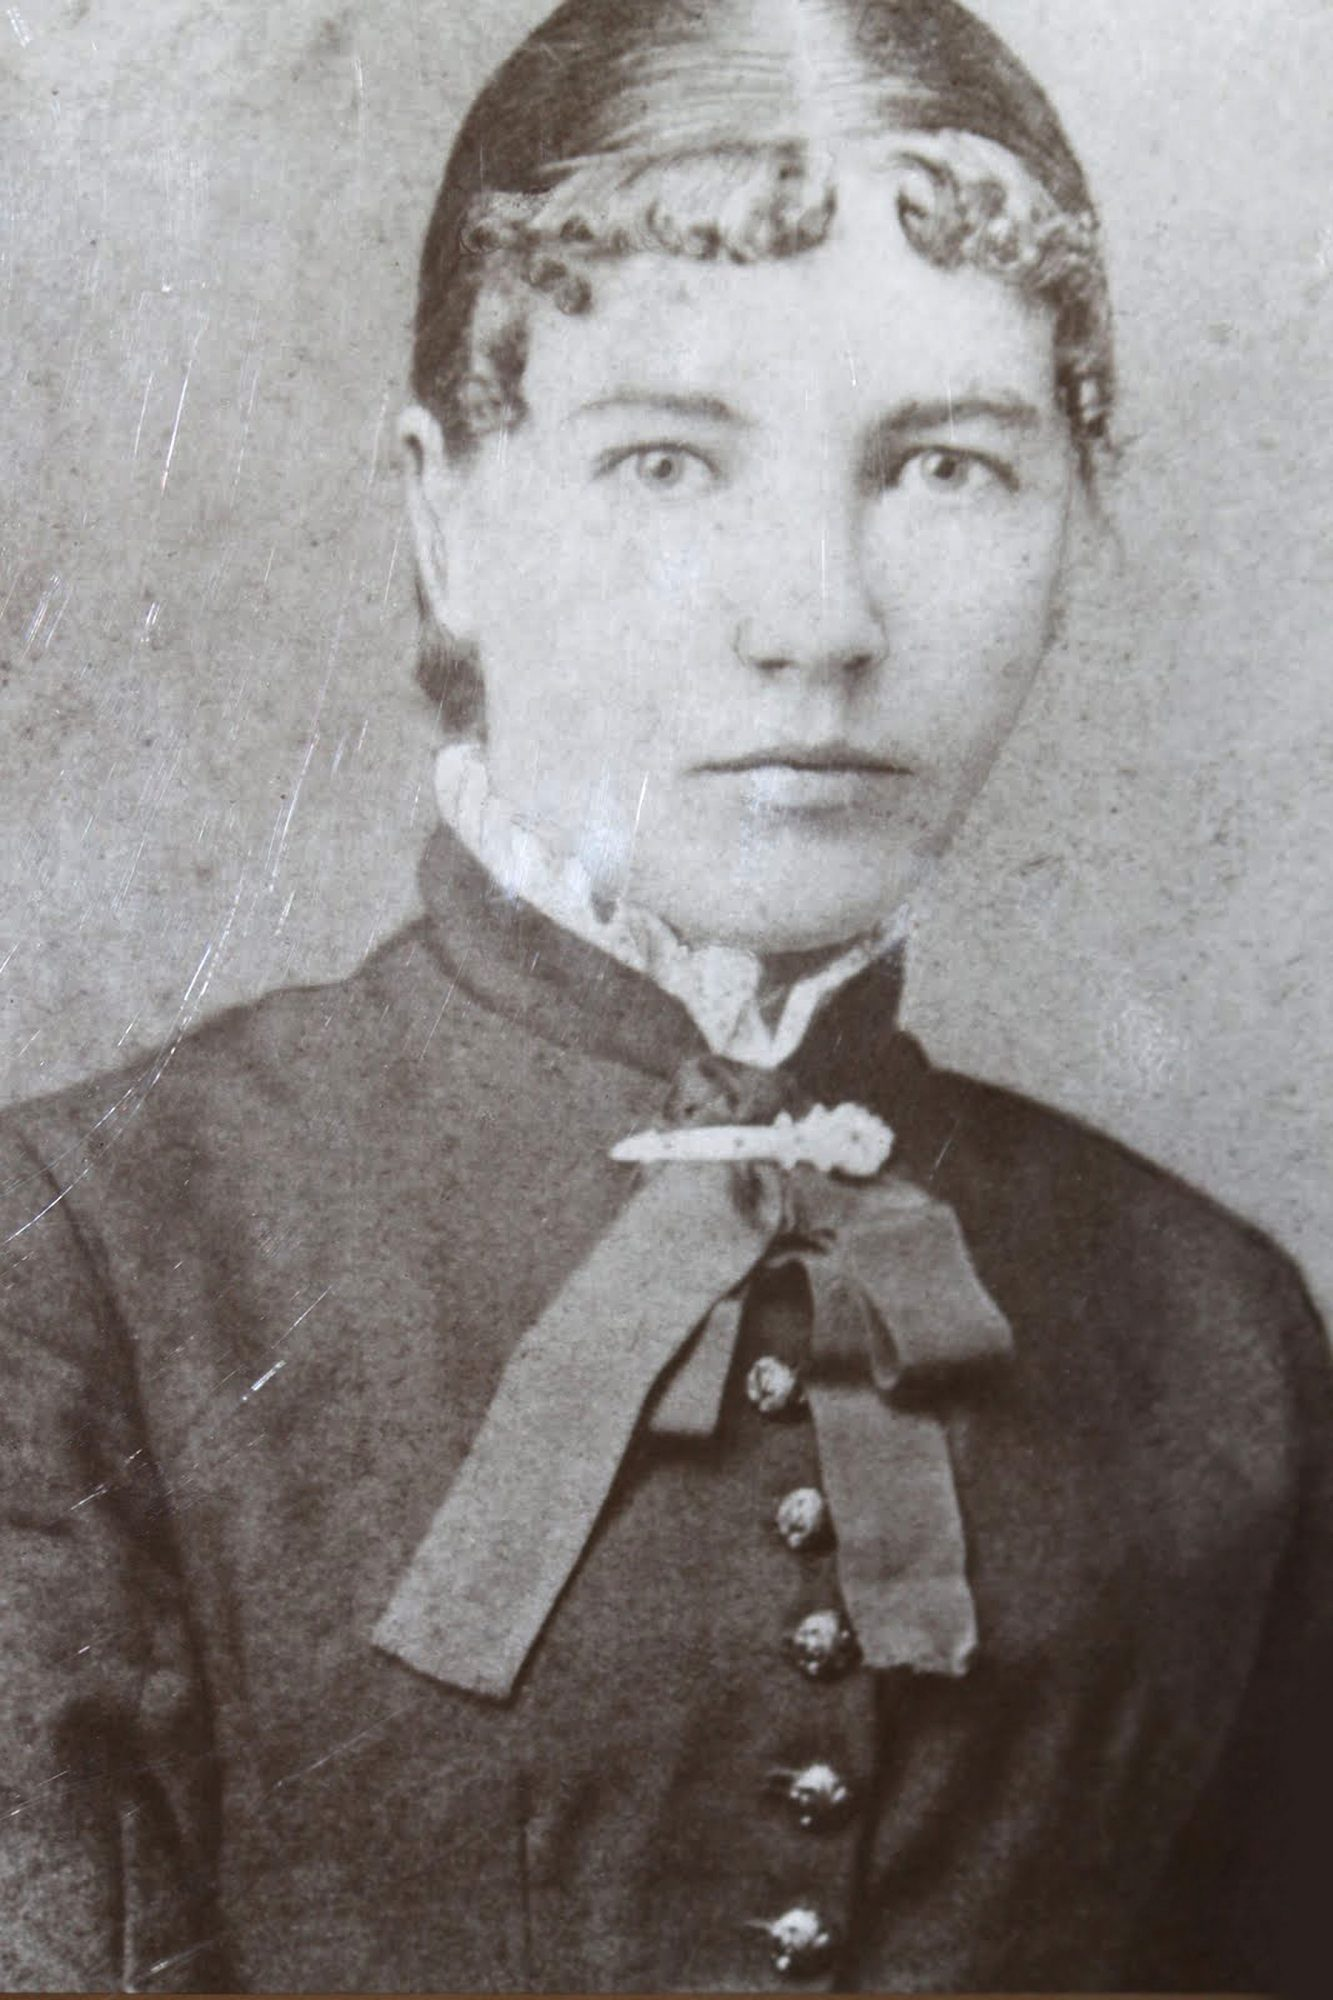 Laura Ingalls Wilder (1867-1957) as schoolteacher, 1887